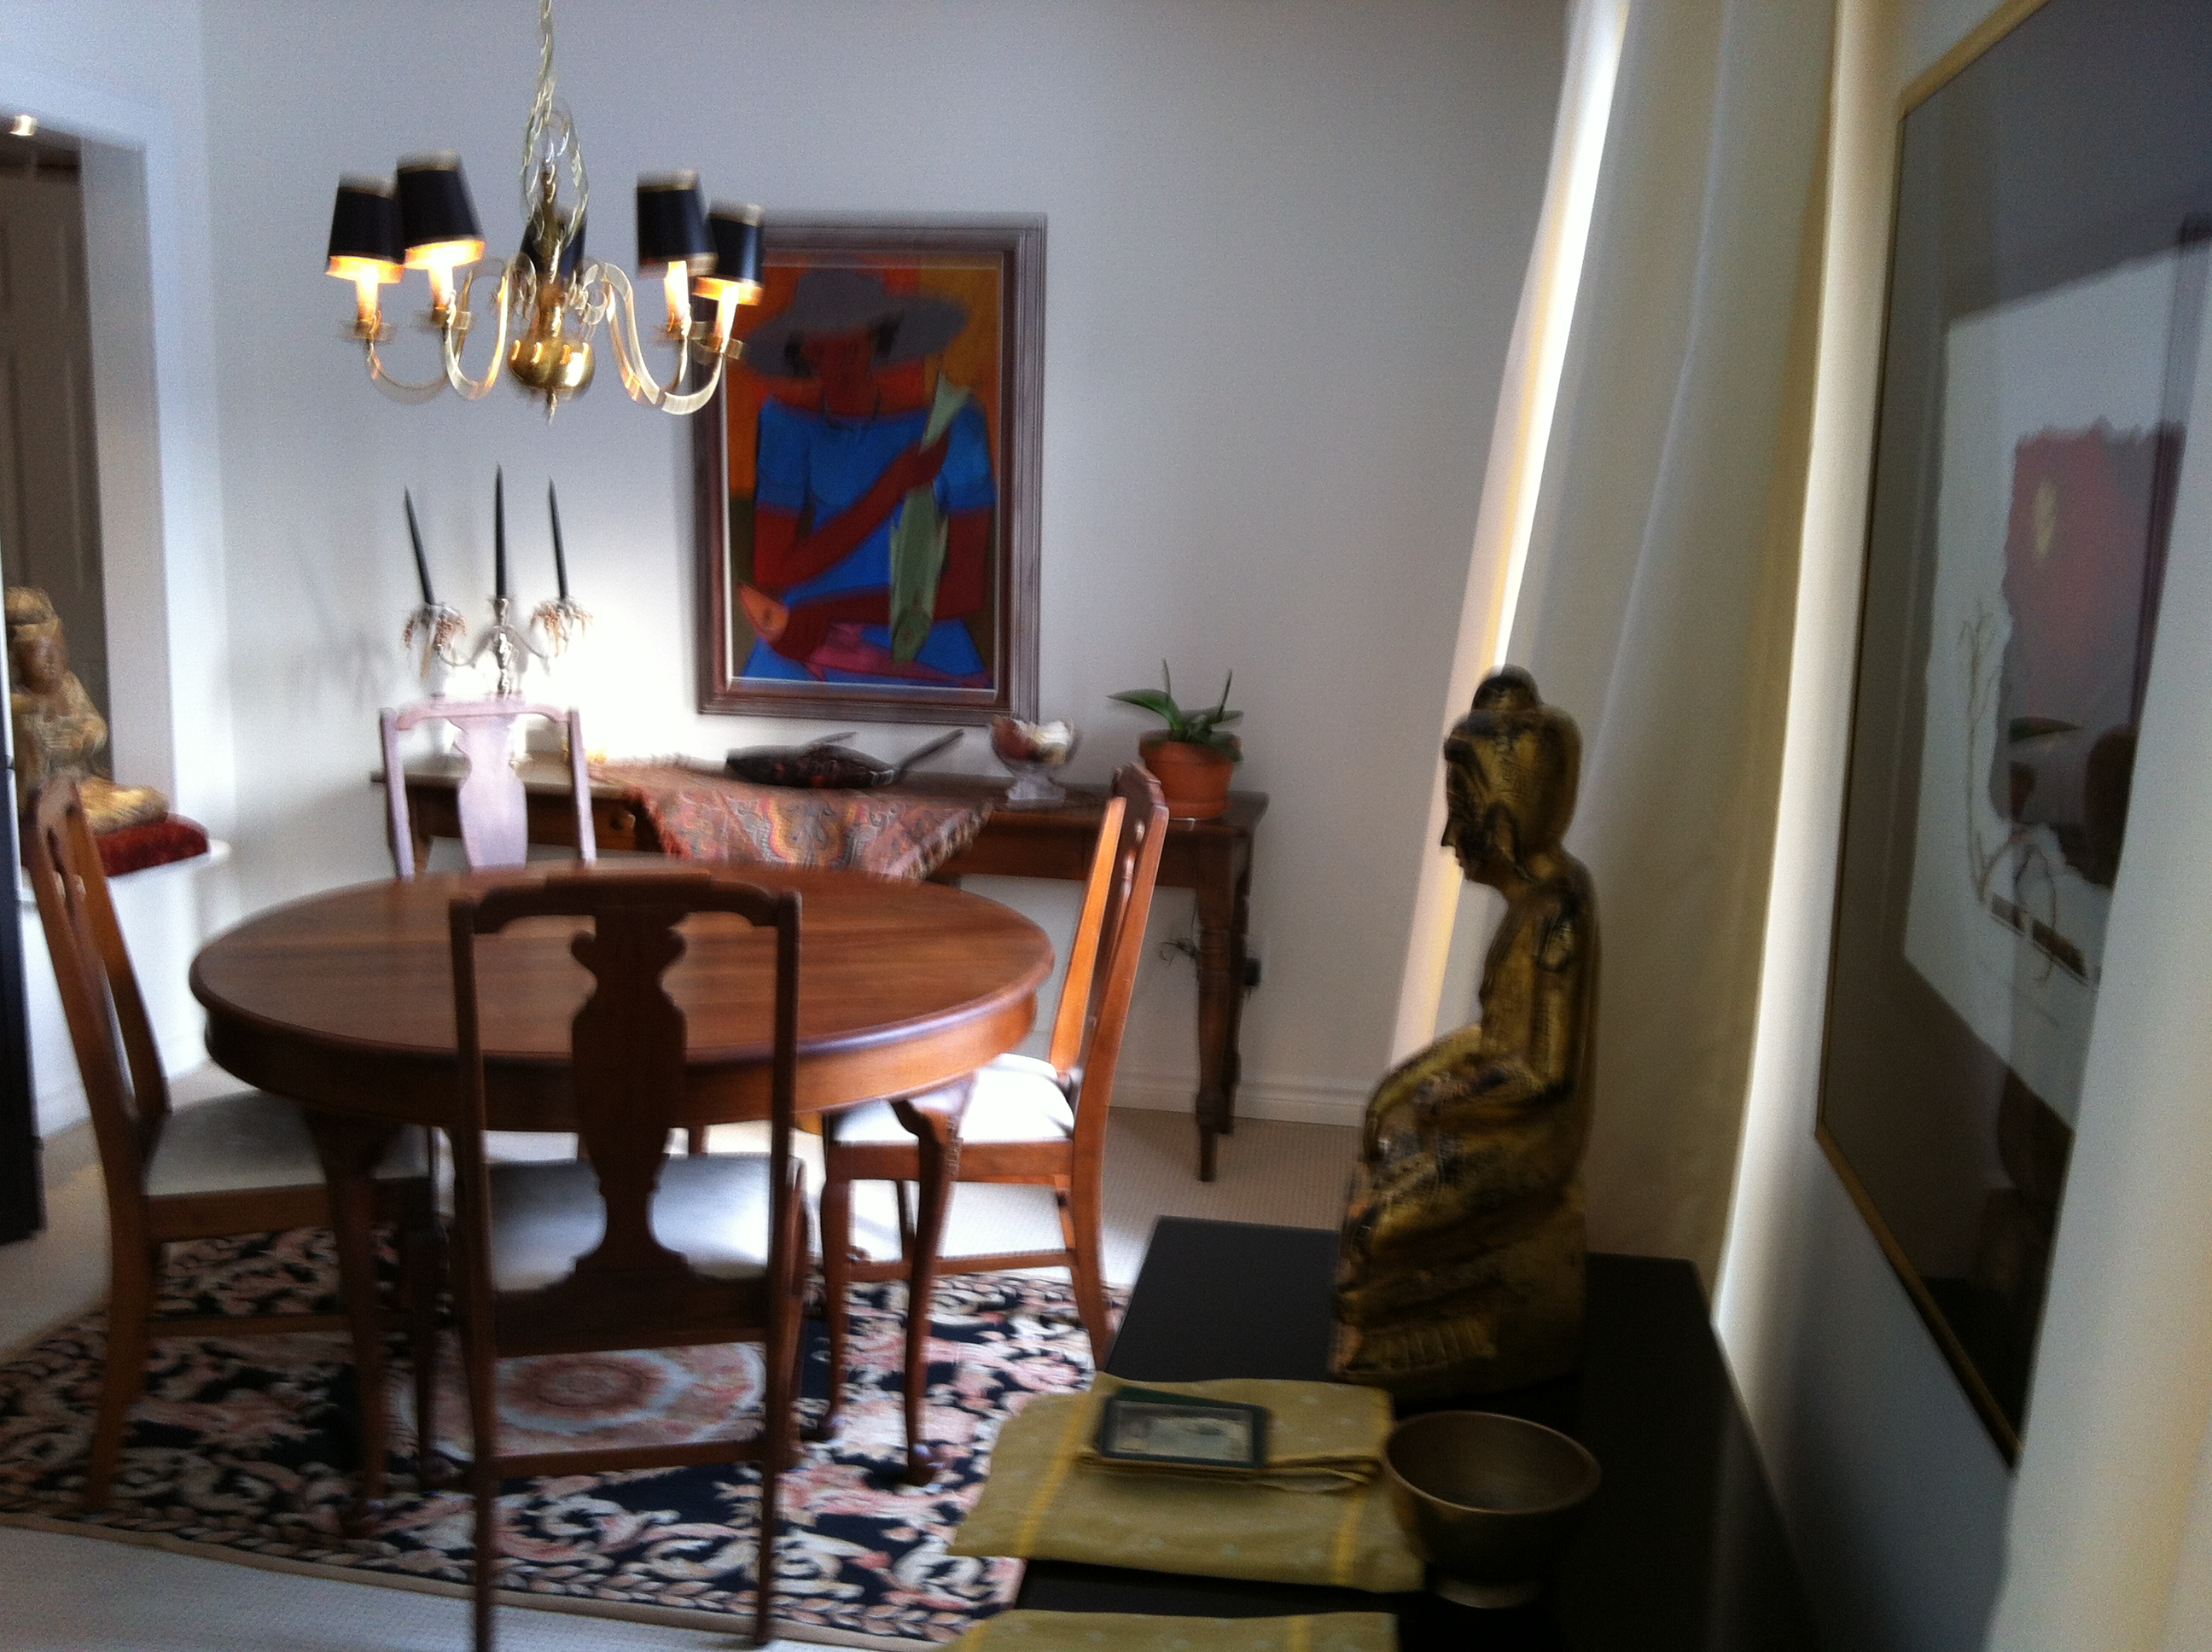 I Have To Confess That Am A Bit Jealous Of Her Finds On Kijiji Wouldnt You Be This Dining Room Table Is So Elegant And The Chairs Are Perfect For